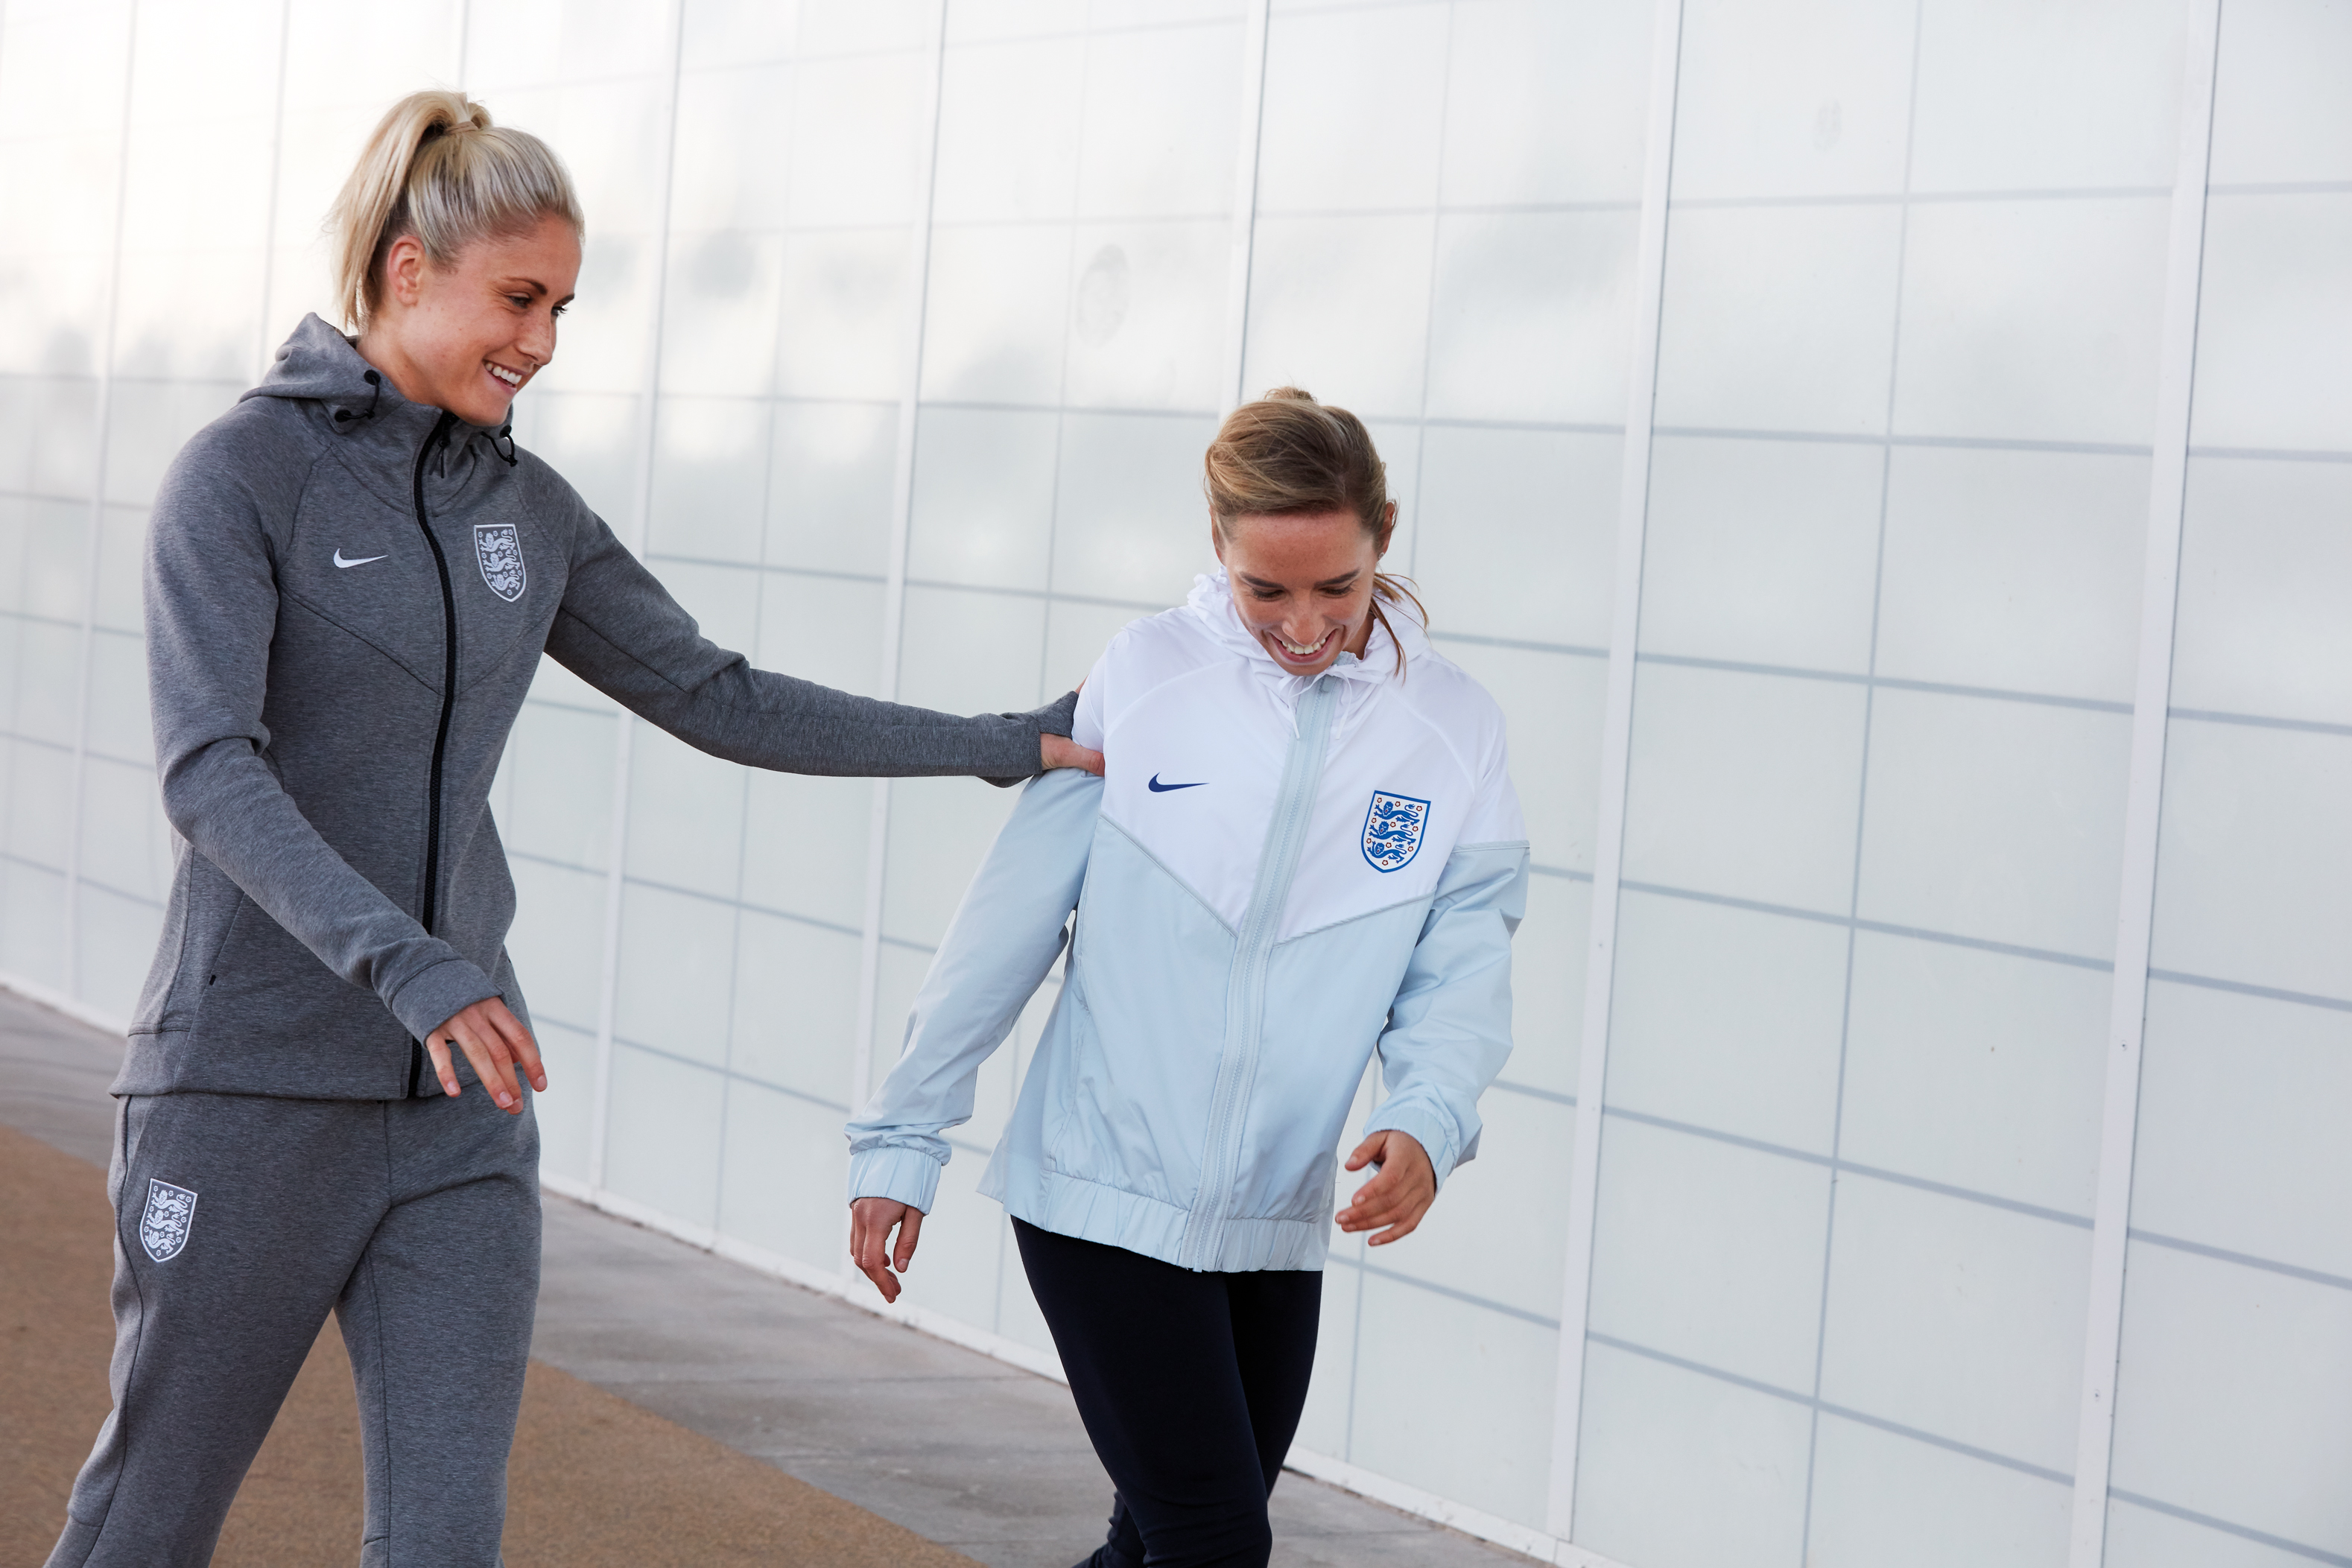 dcd103c97639d All the reaction as England's World Cup kit is revealed ...